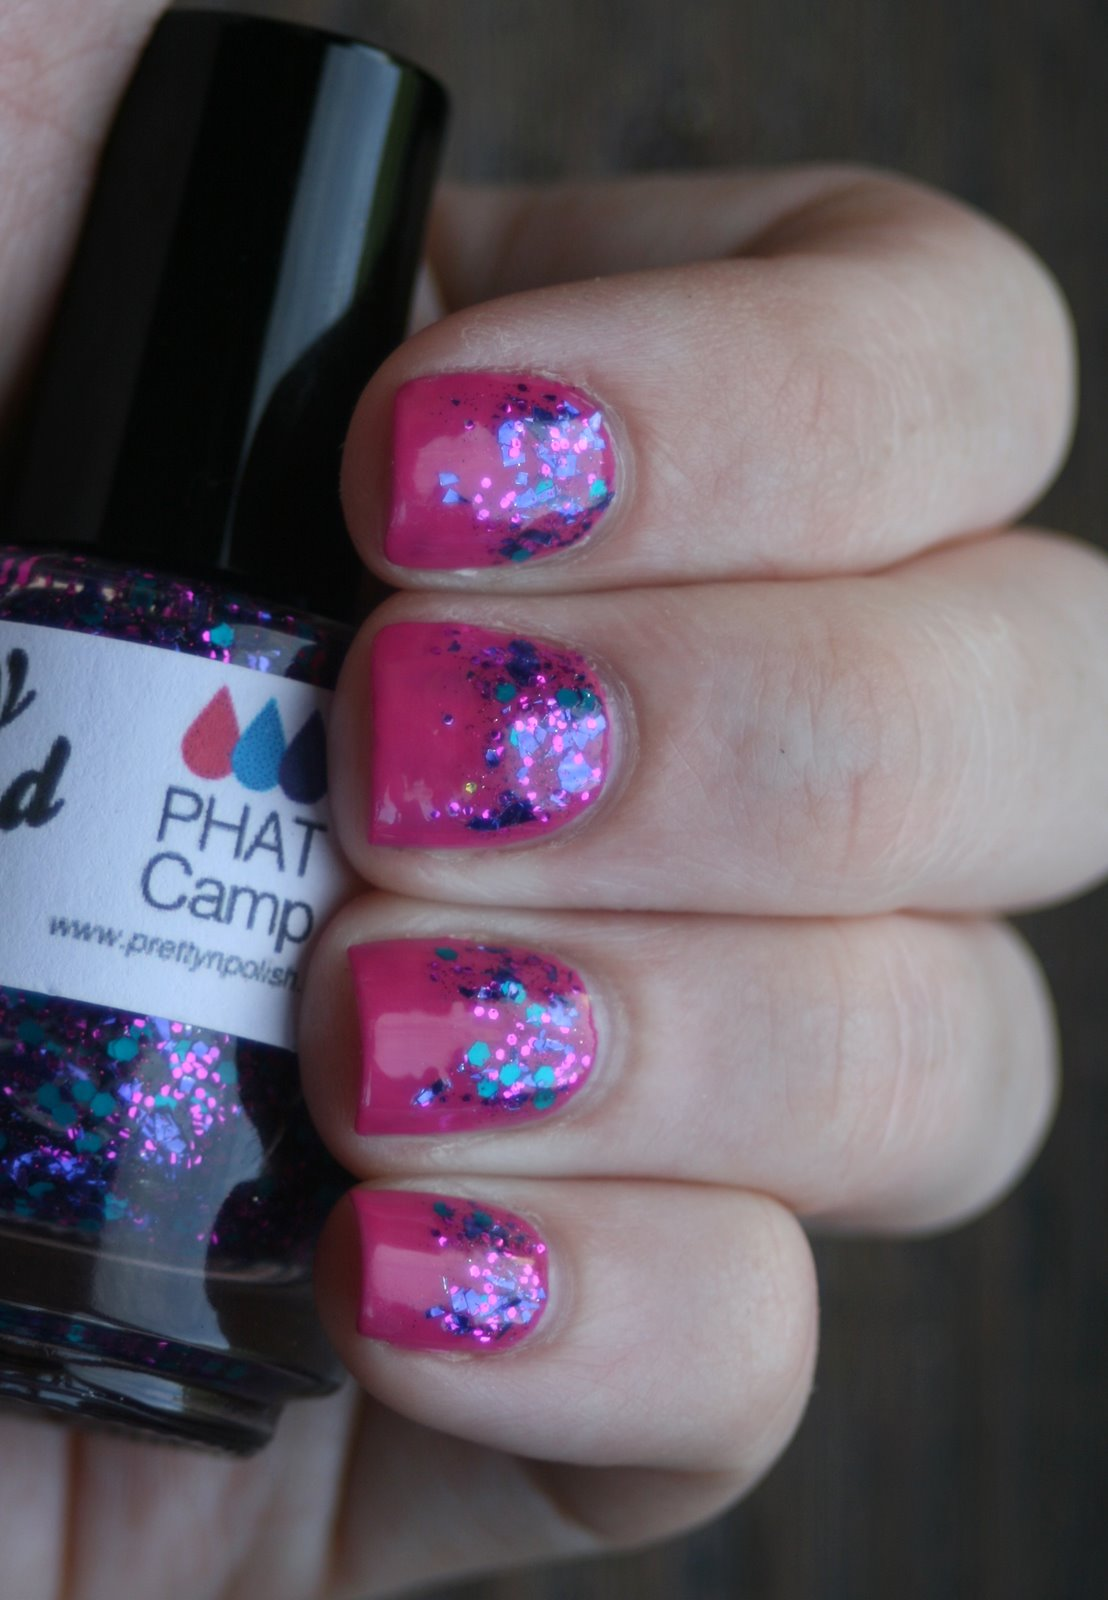 Pretty & Polished Phat Camp over OPI Kiss Me On My Tulips swatch